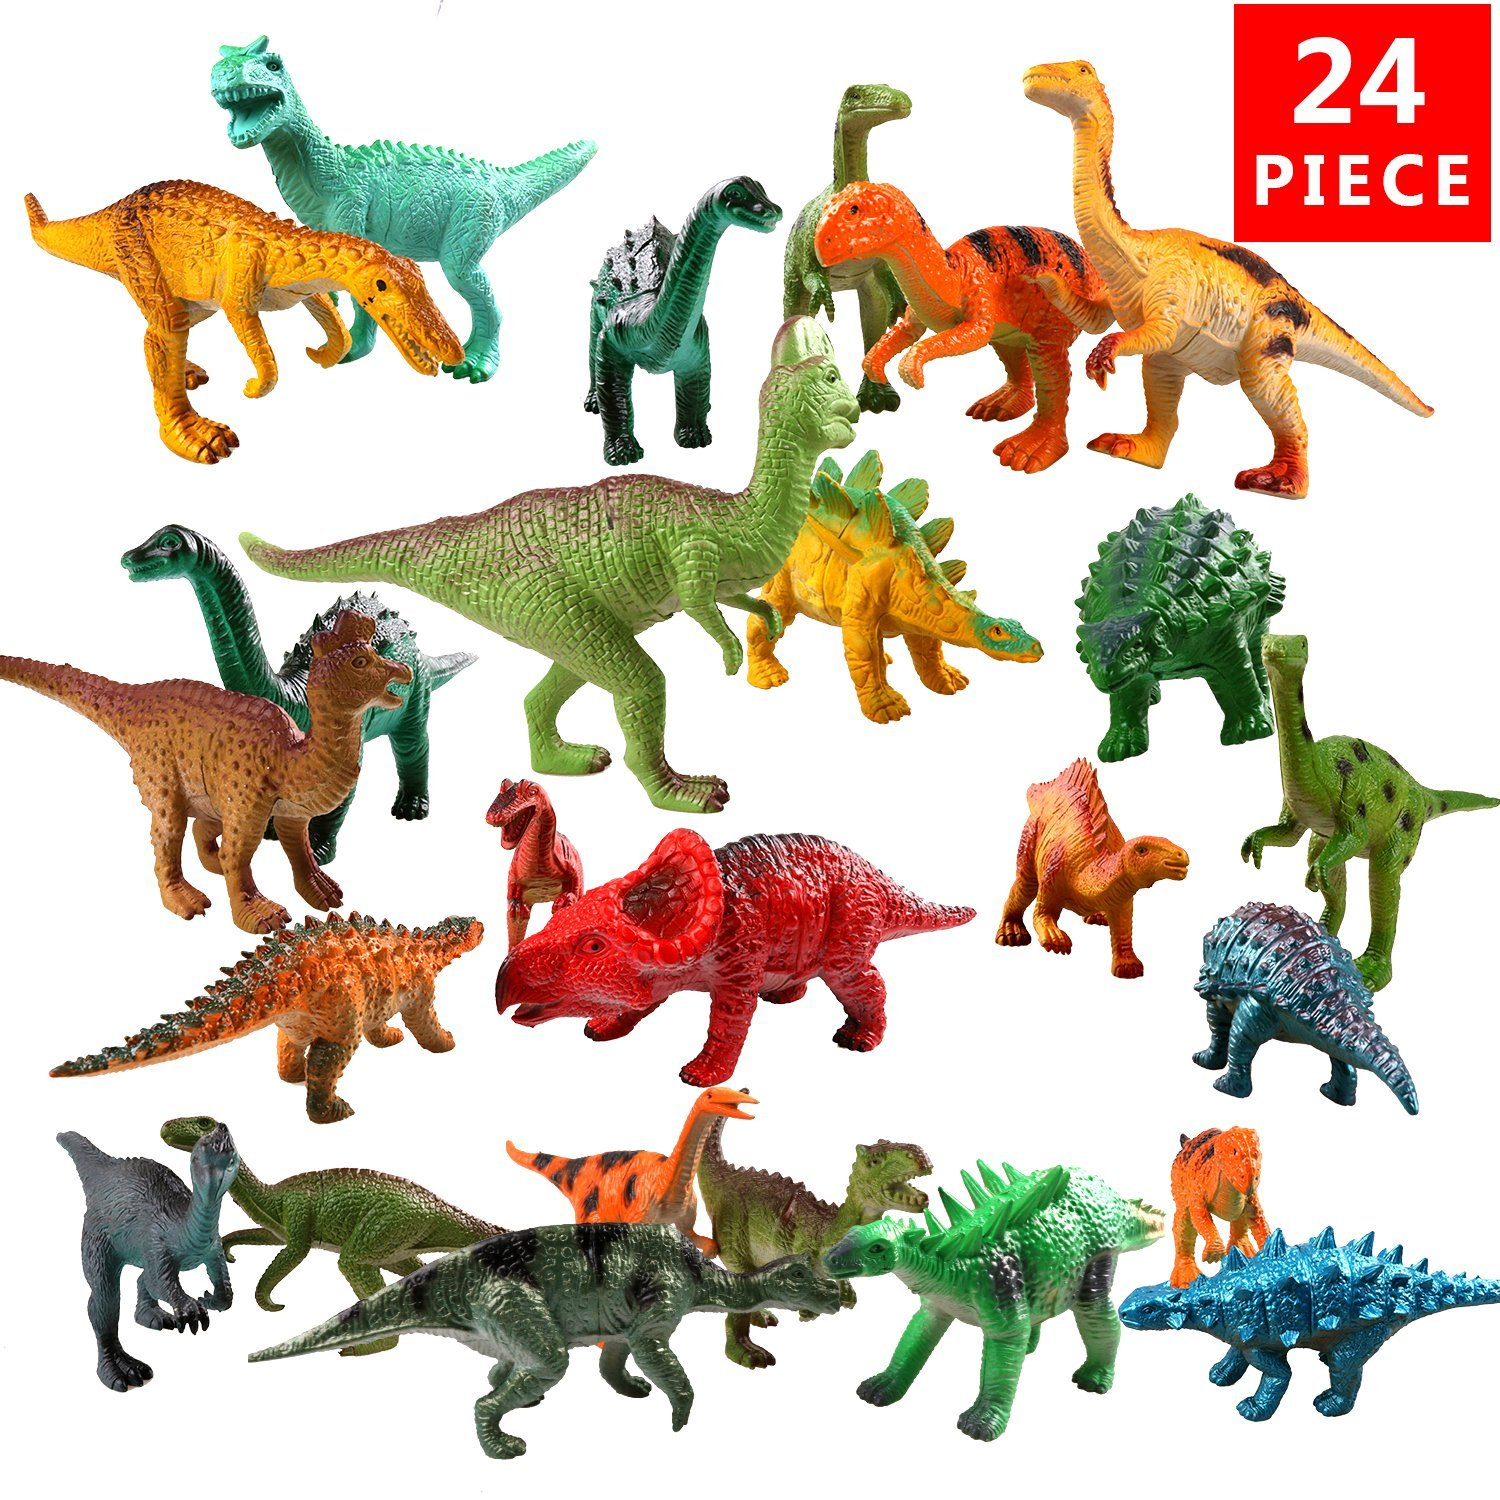 Toys For Baby Transform Simulation Dinosaur Toys Model Dinosaur Collection Education Gifts Co Moderate Cost